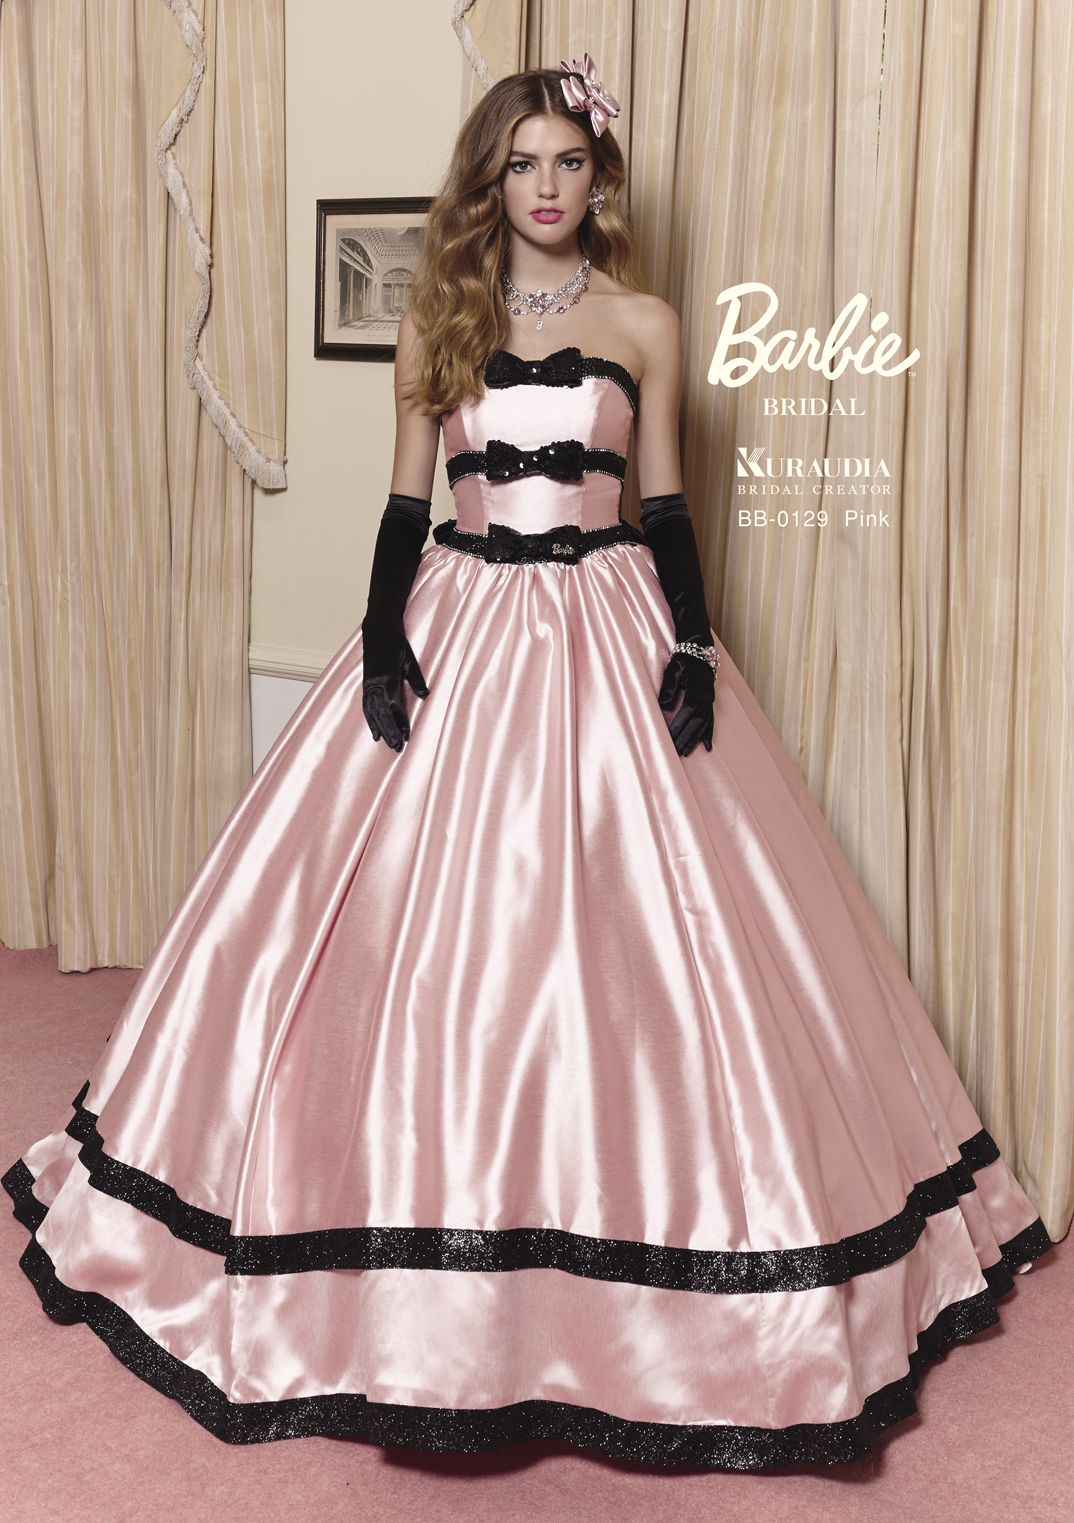 Forced to wear a ball gown - I D So Wear Something Like This On The Red Carpet Even Though It